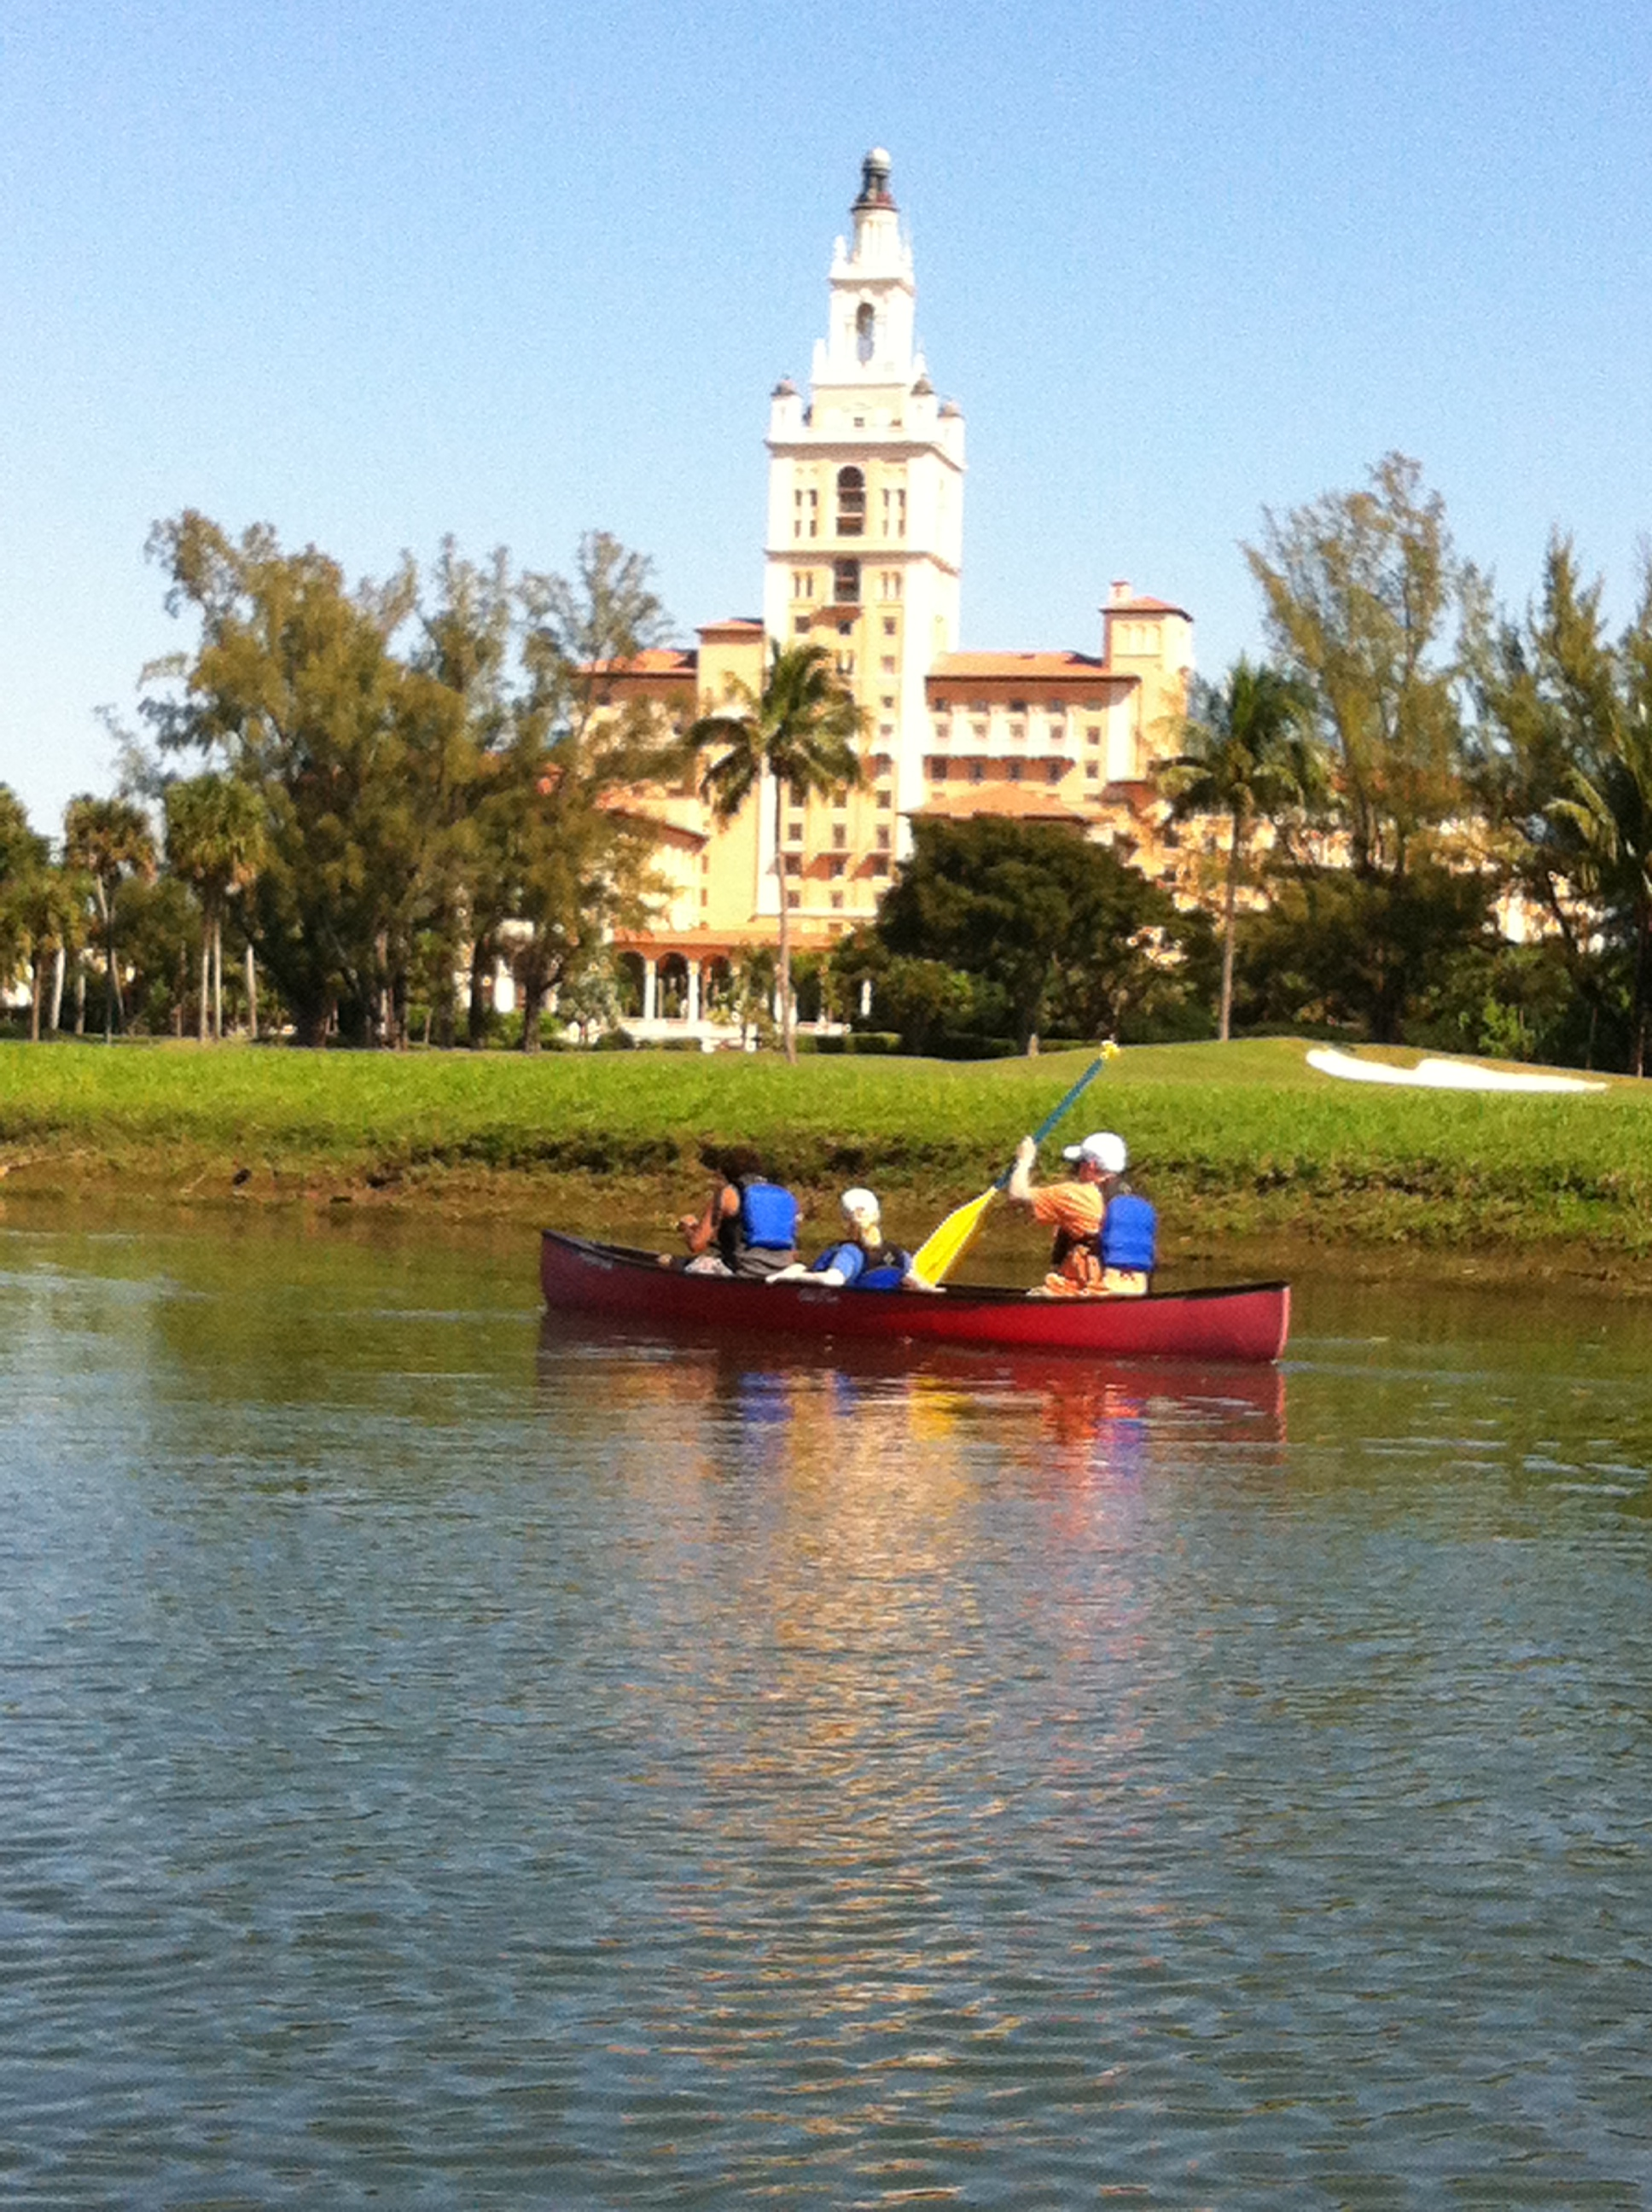 Family cruises by the Biltmore Hotel and Country Club